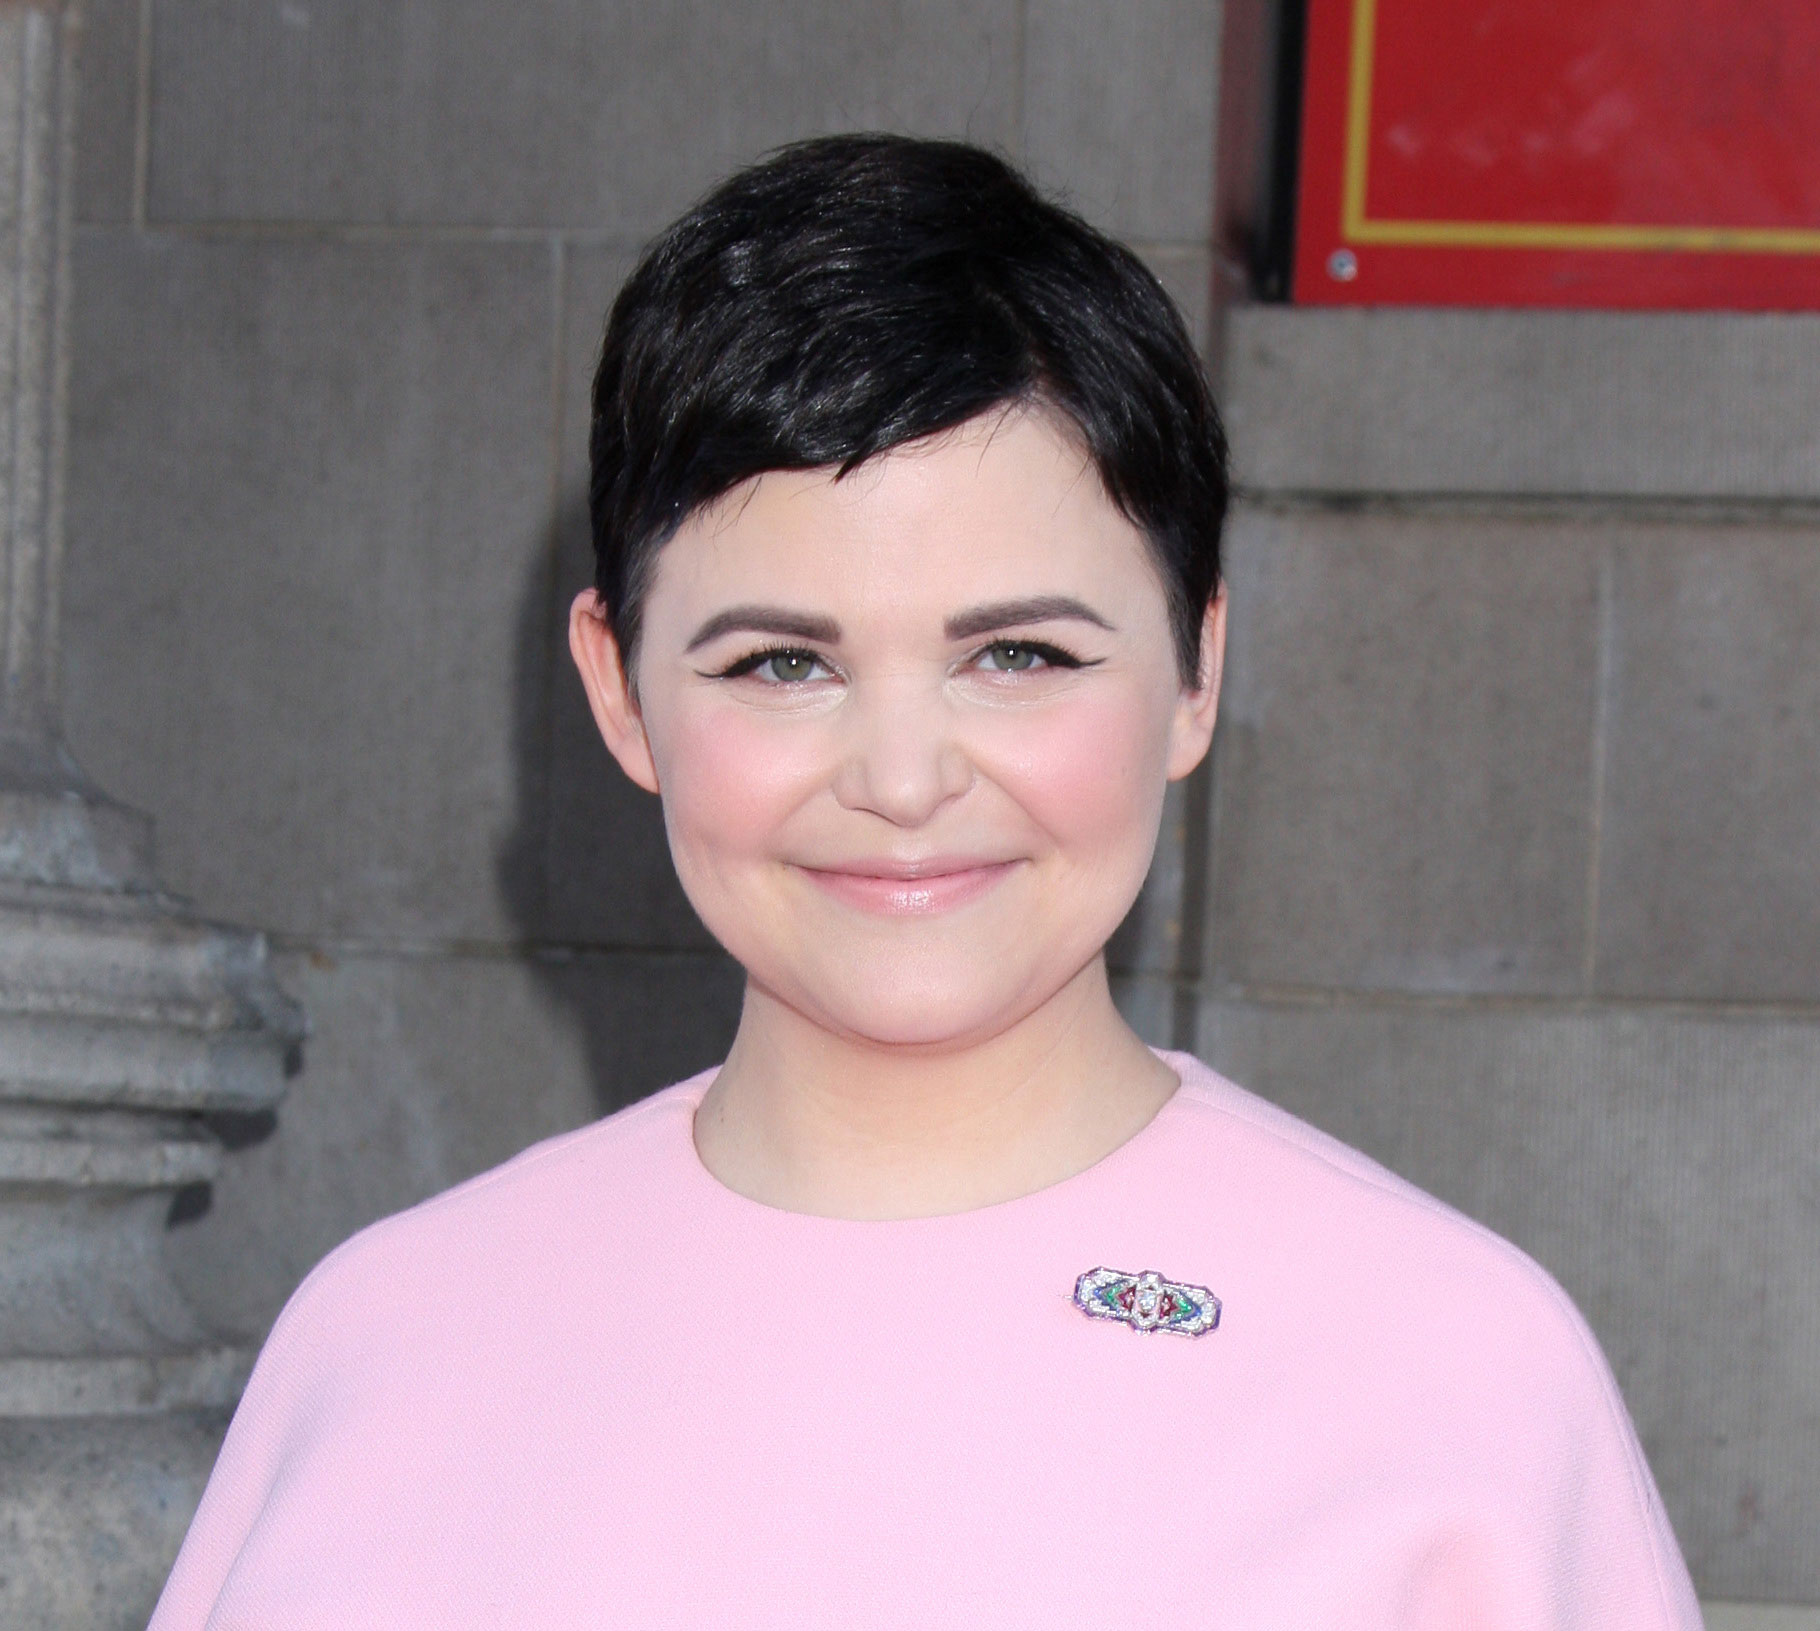 Ginnifer Goodwin with a round face shape